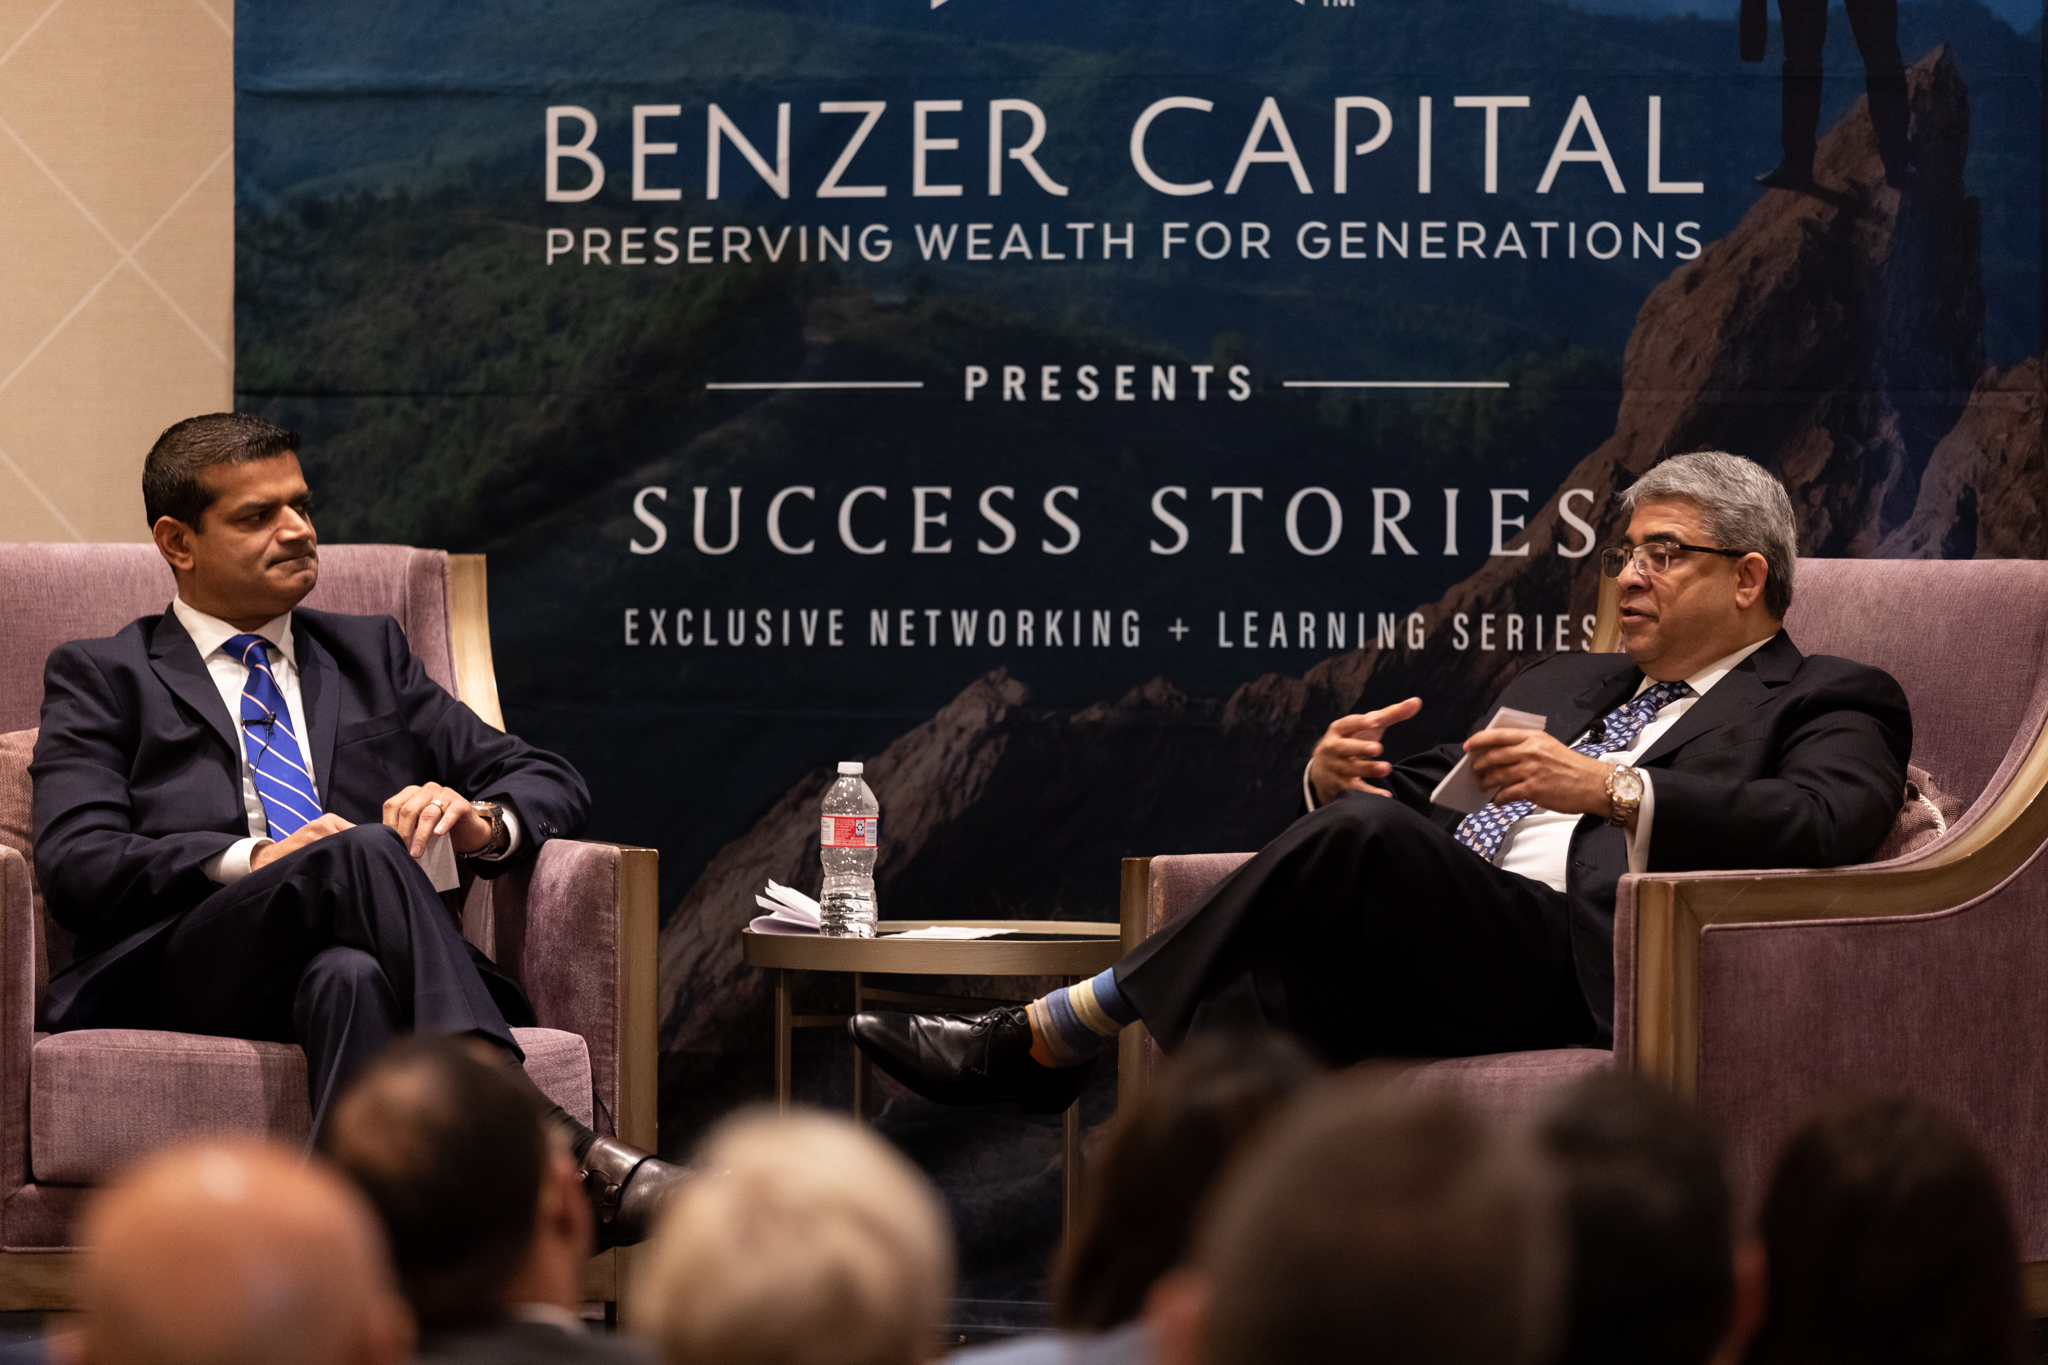 Benzer Capital_Briar Club event_web ready image-127.jpg